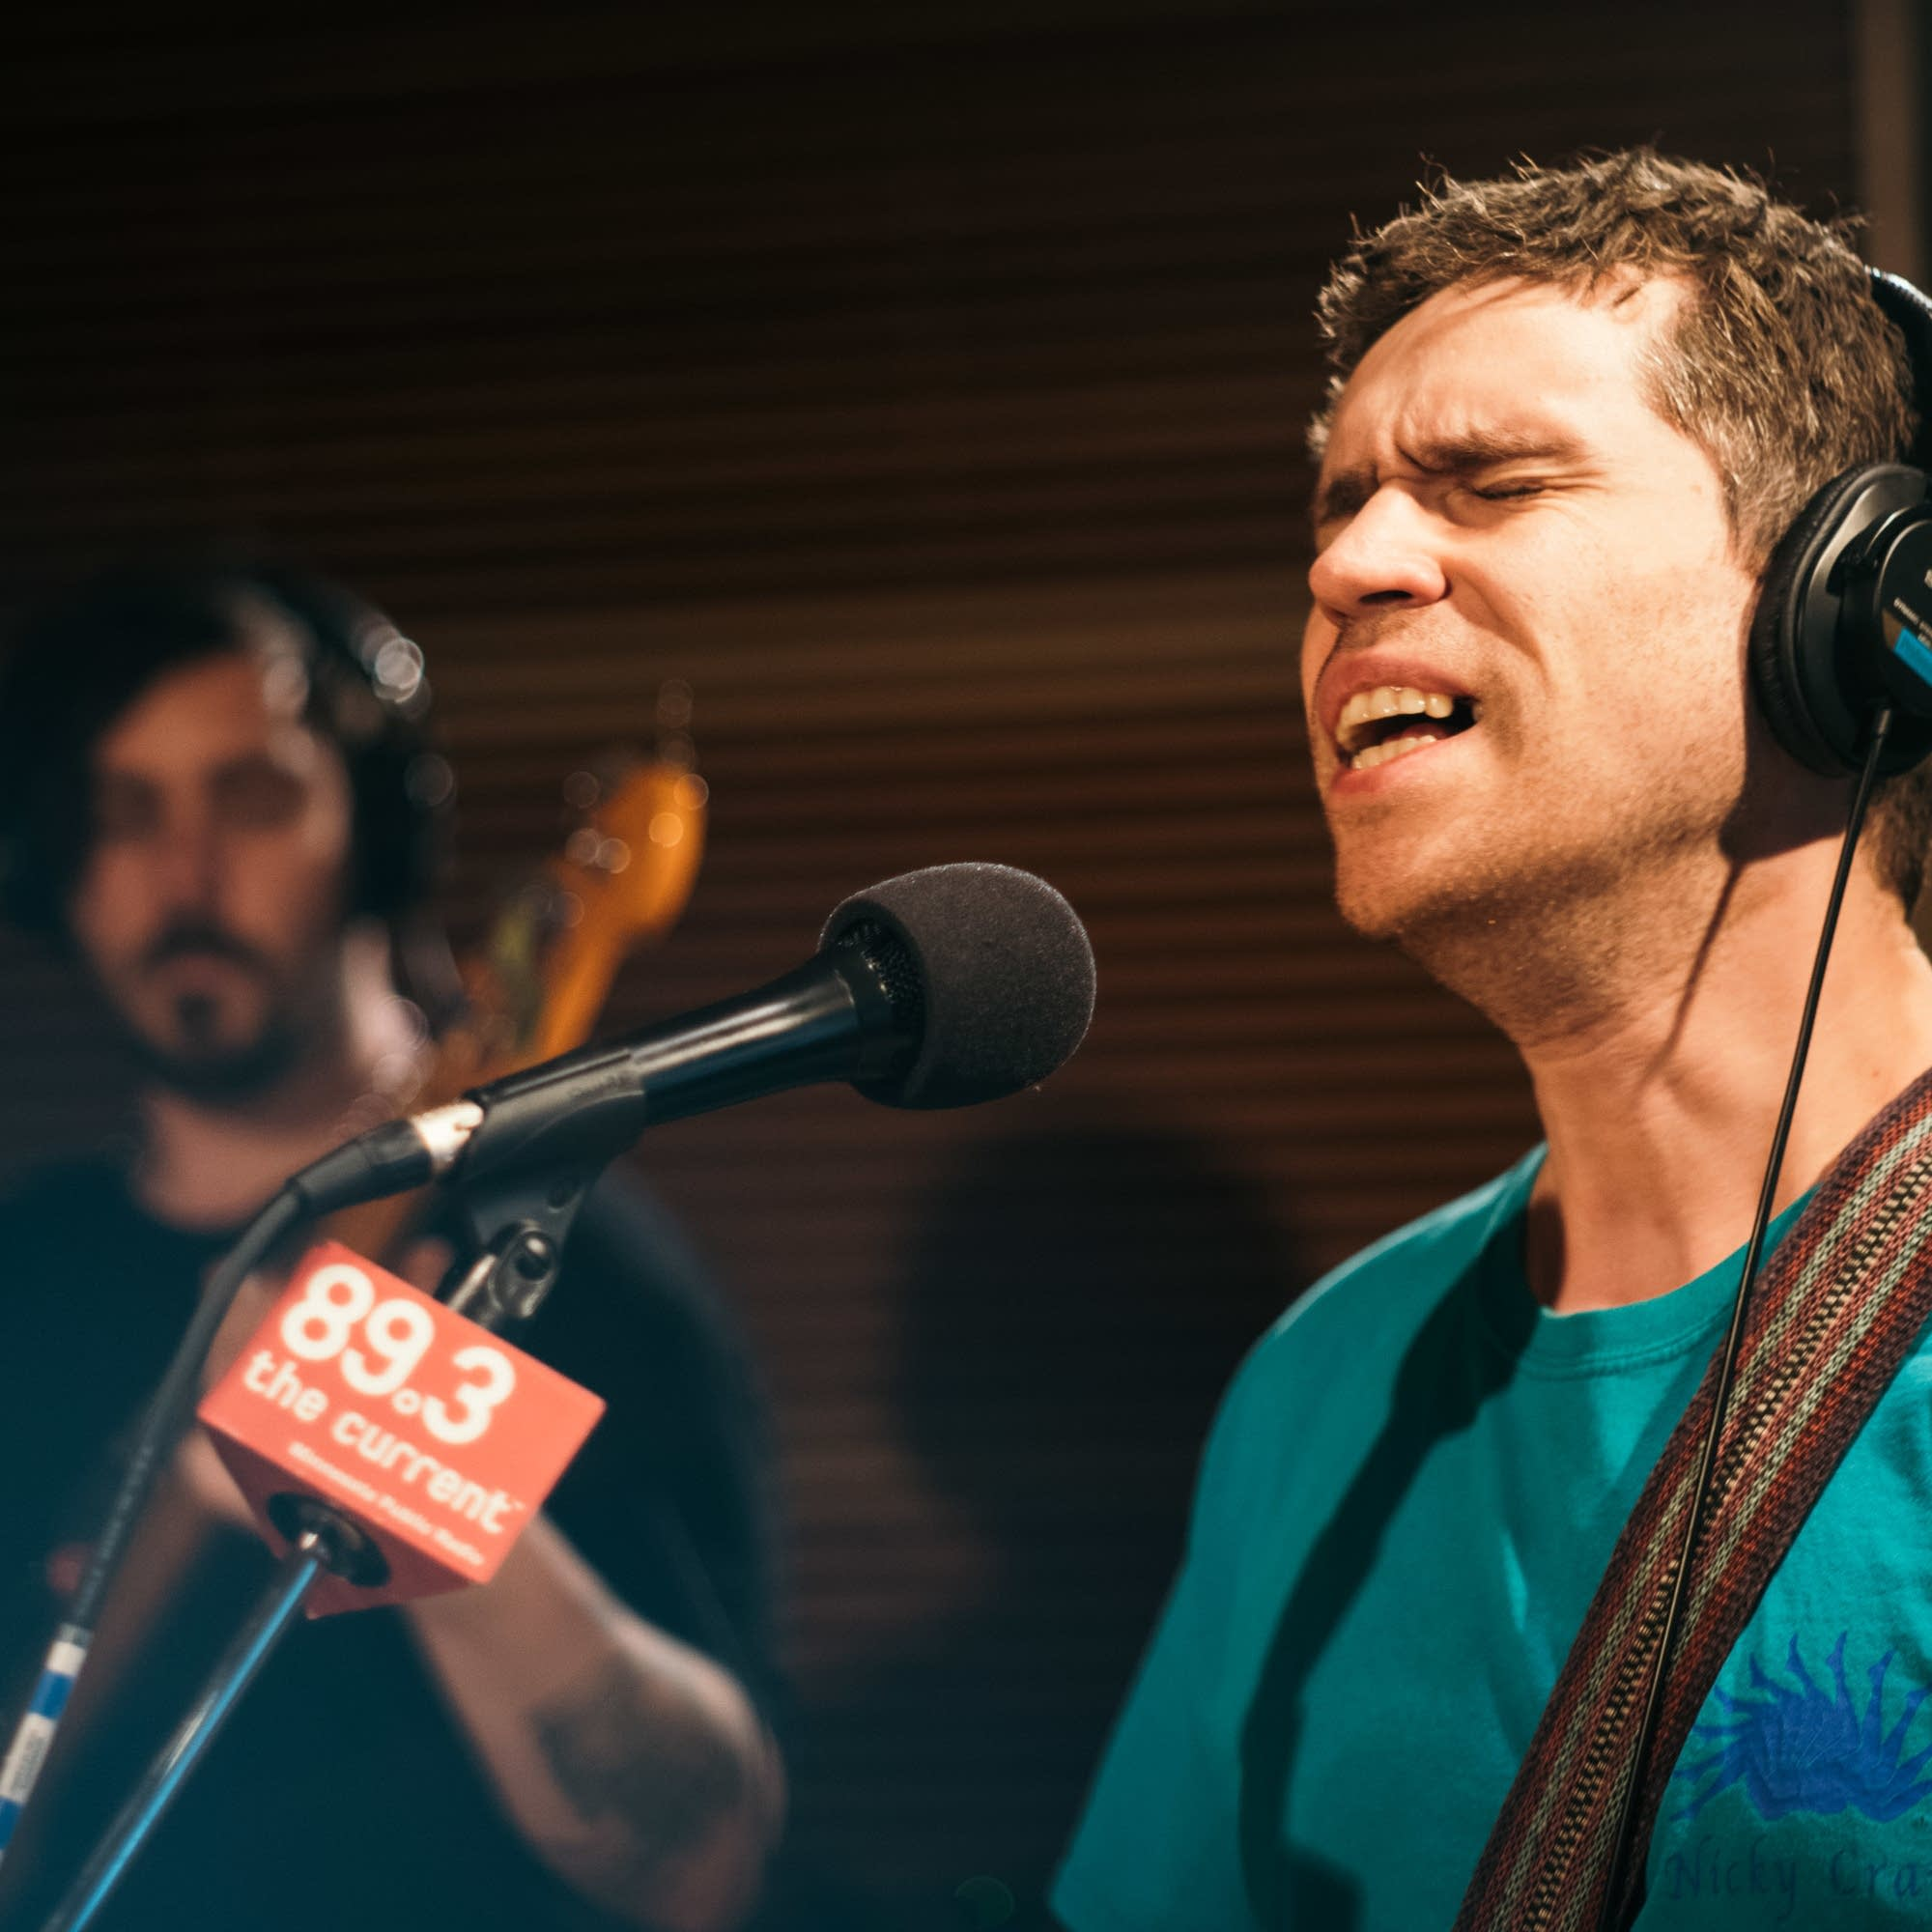 Parquet Courts perform in The Current studio